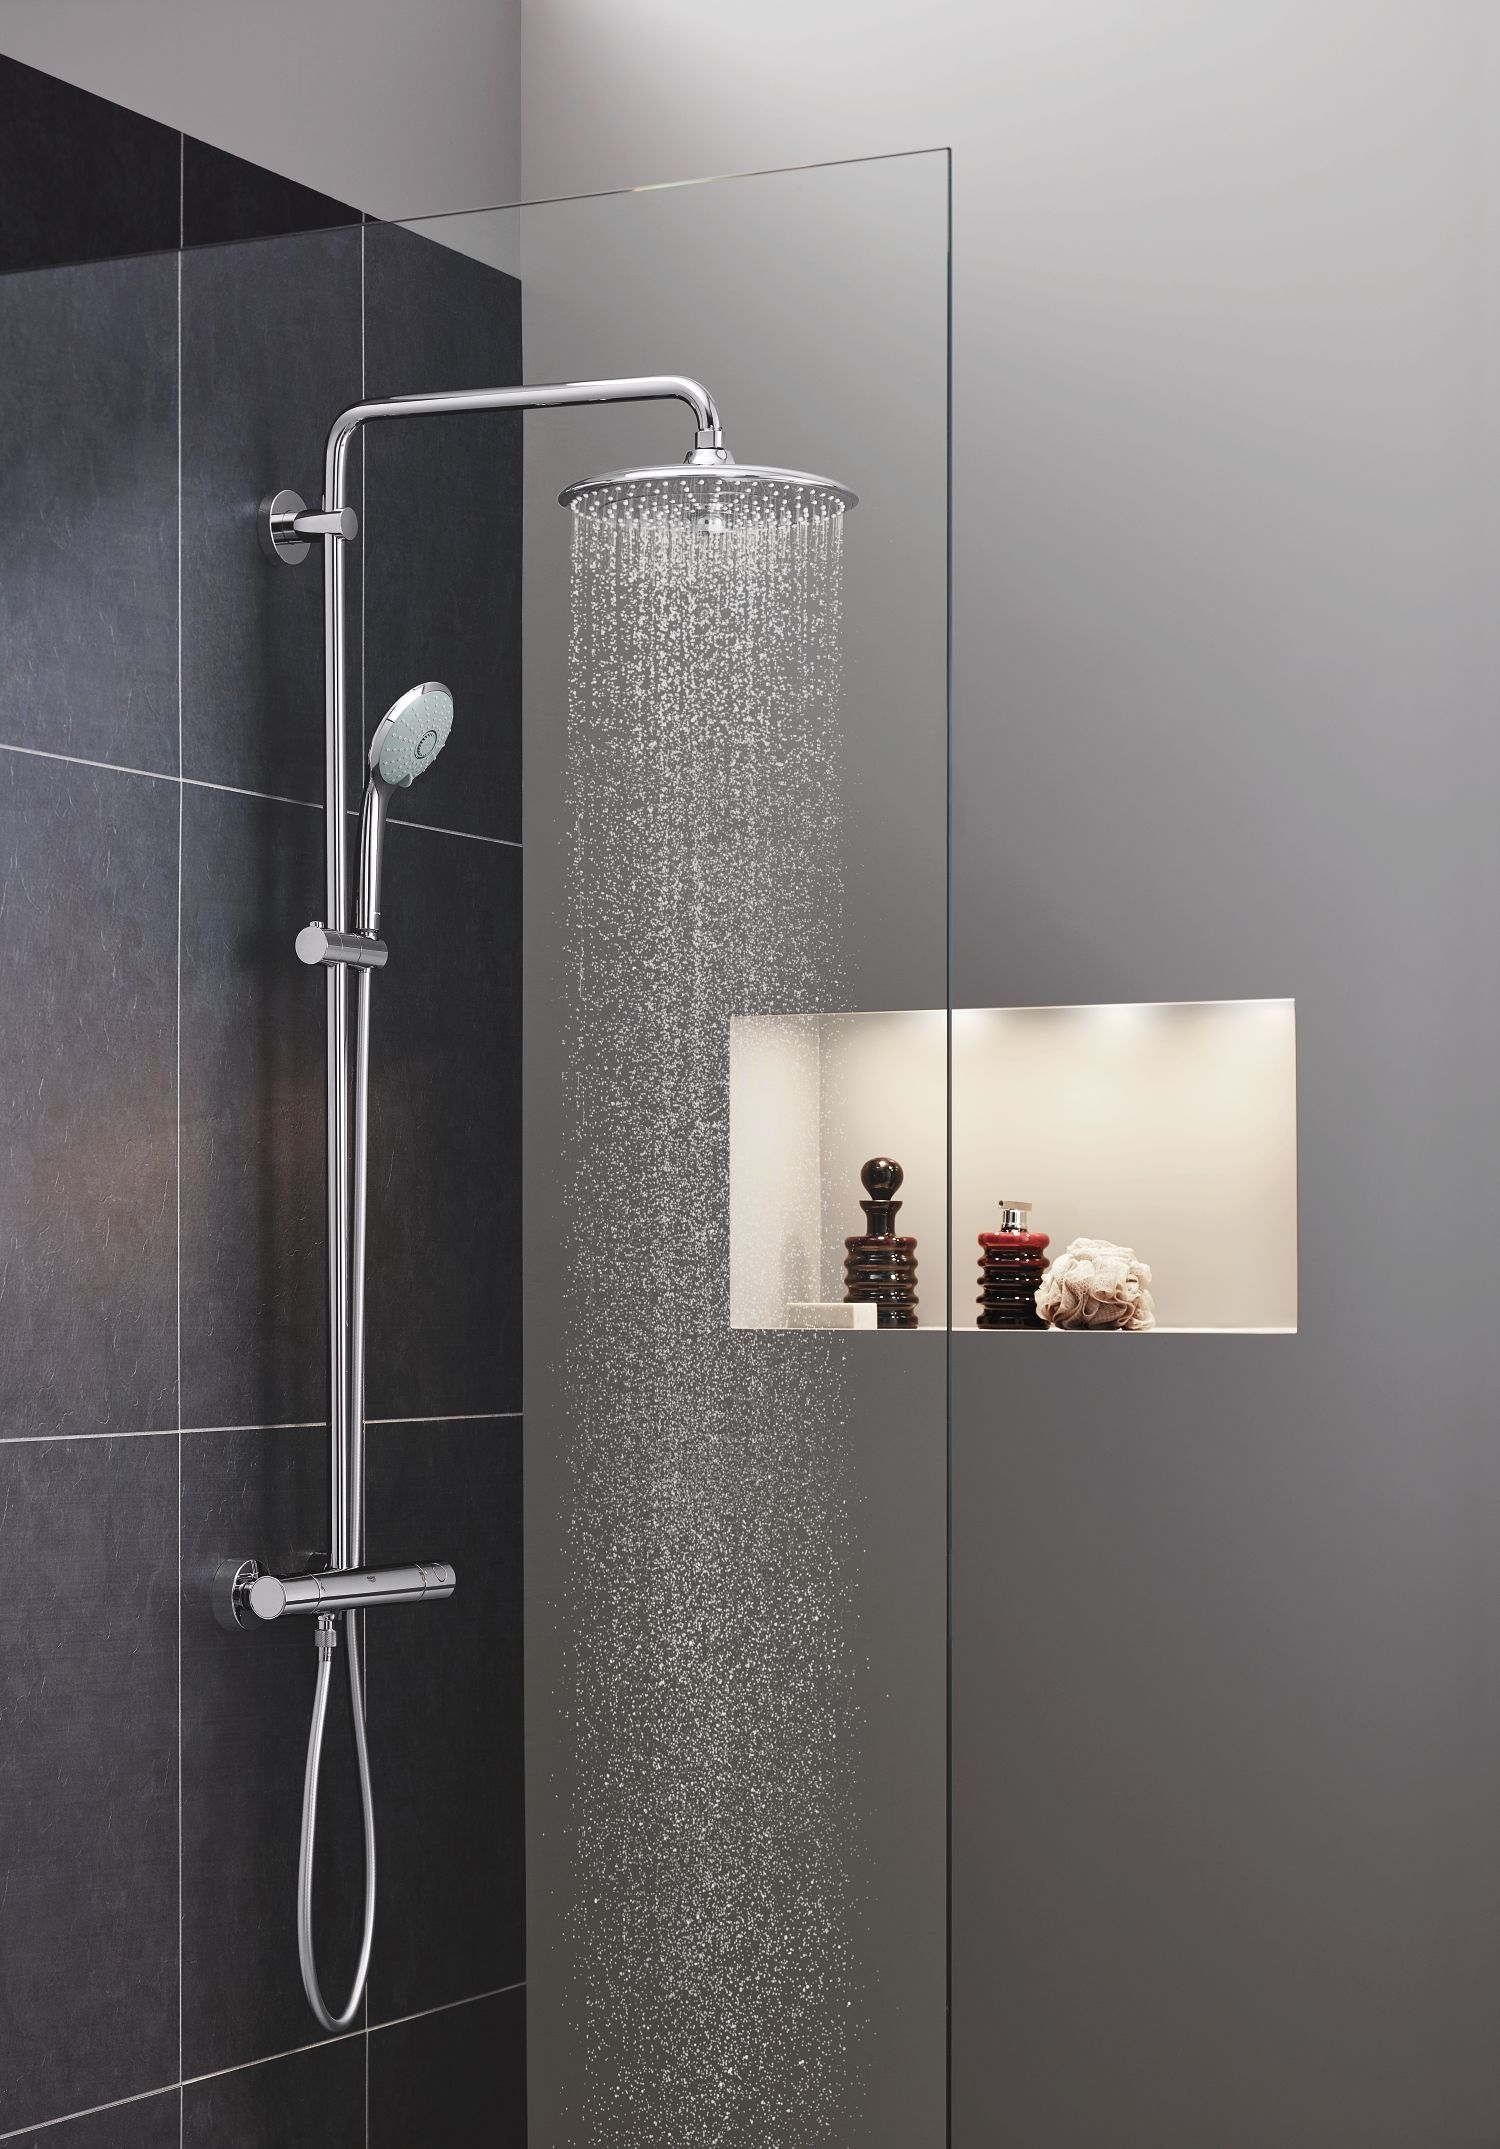 Grohe Euphoria Douchesysteem 180 Chroom The Grohe Rainshower Features The Choice Of Different Spray